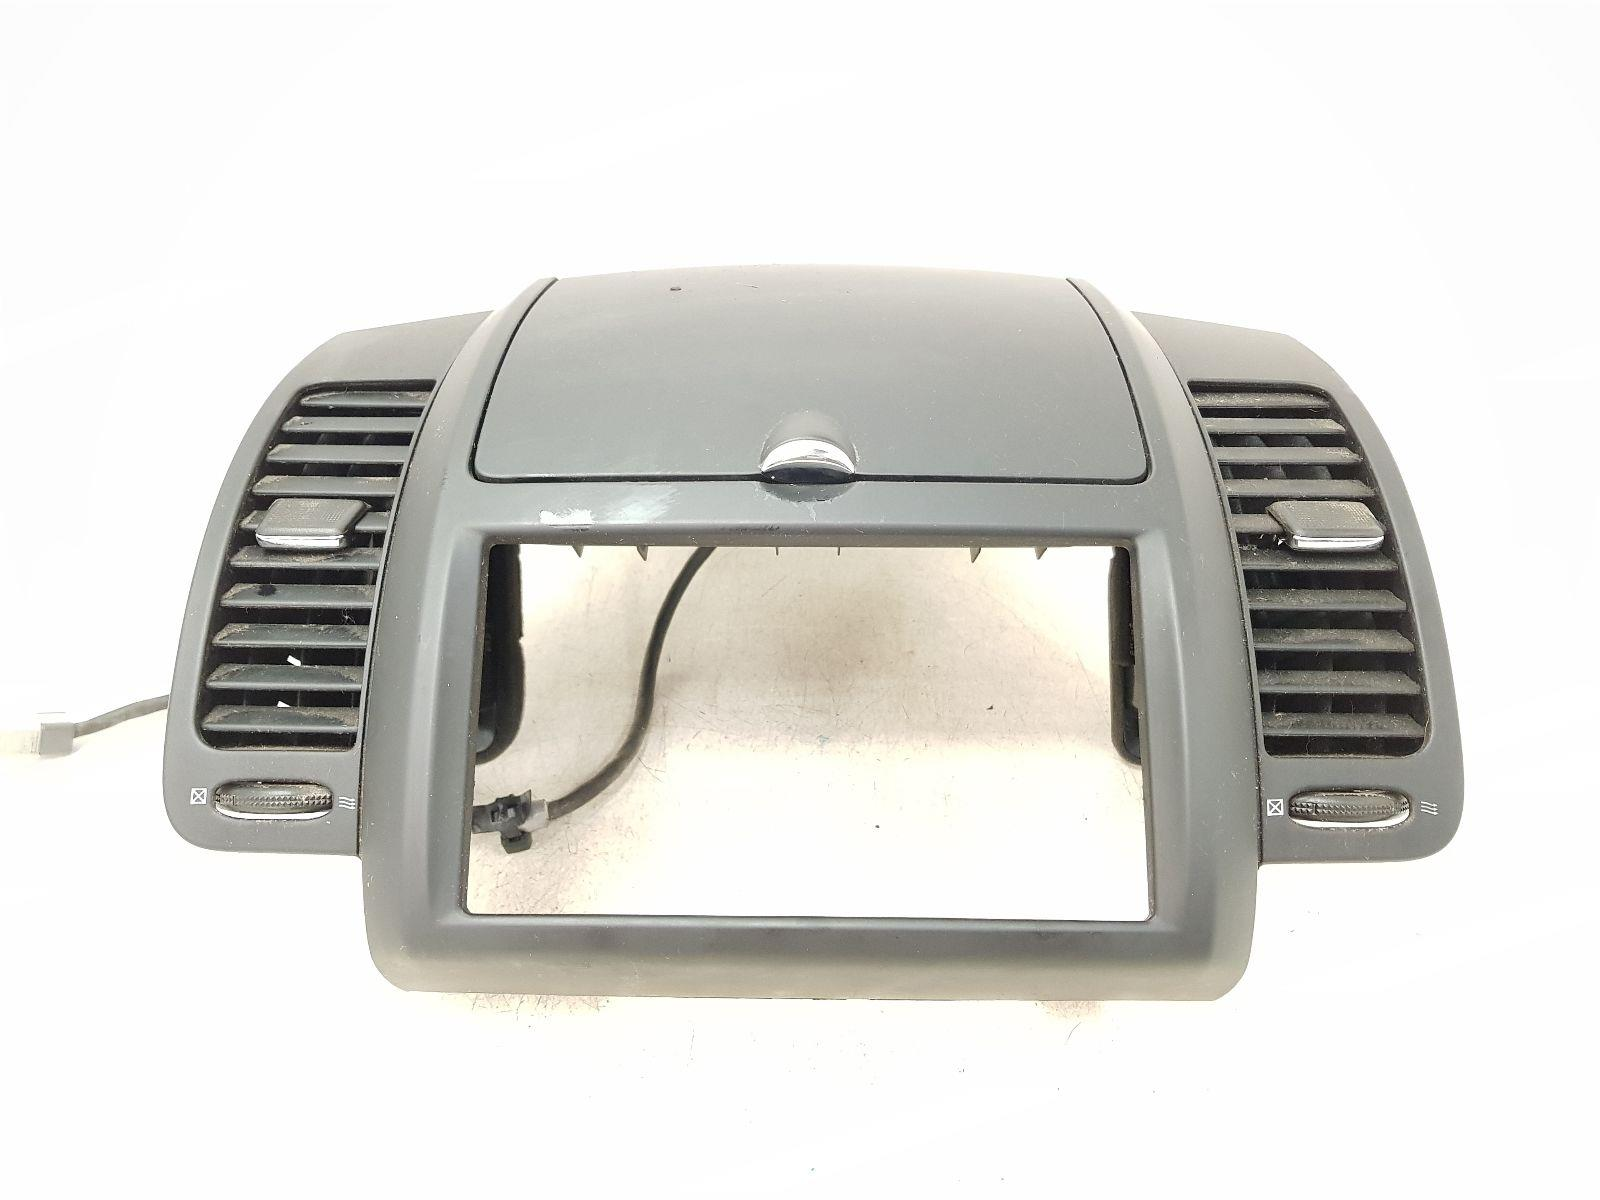 2006-2013 MK1 NISSAN NOTE E11 TOP STORAGE COMPARTMENT INCLUDING VENTS 68261BH04E